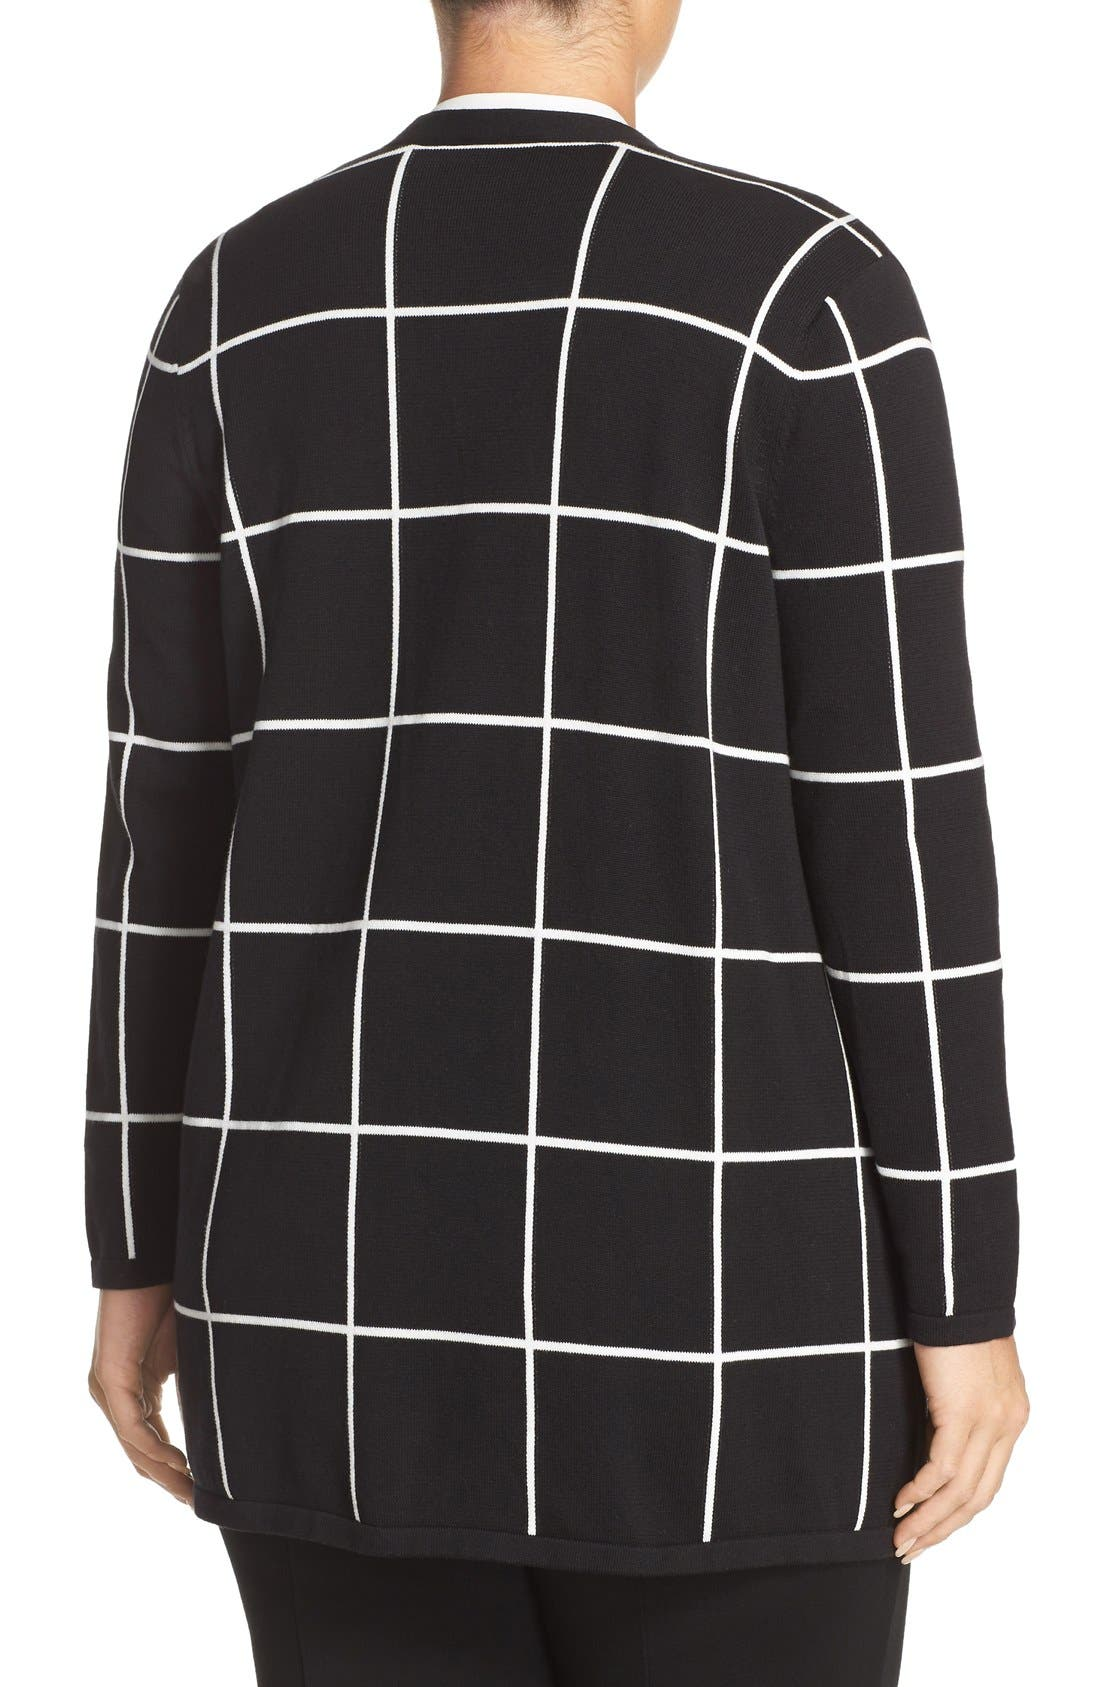 Alternate Image 2  - Vince Camuto Windowpane Intarsia Open Front Cardigan (Plus Size)